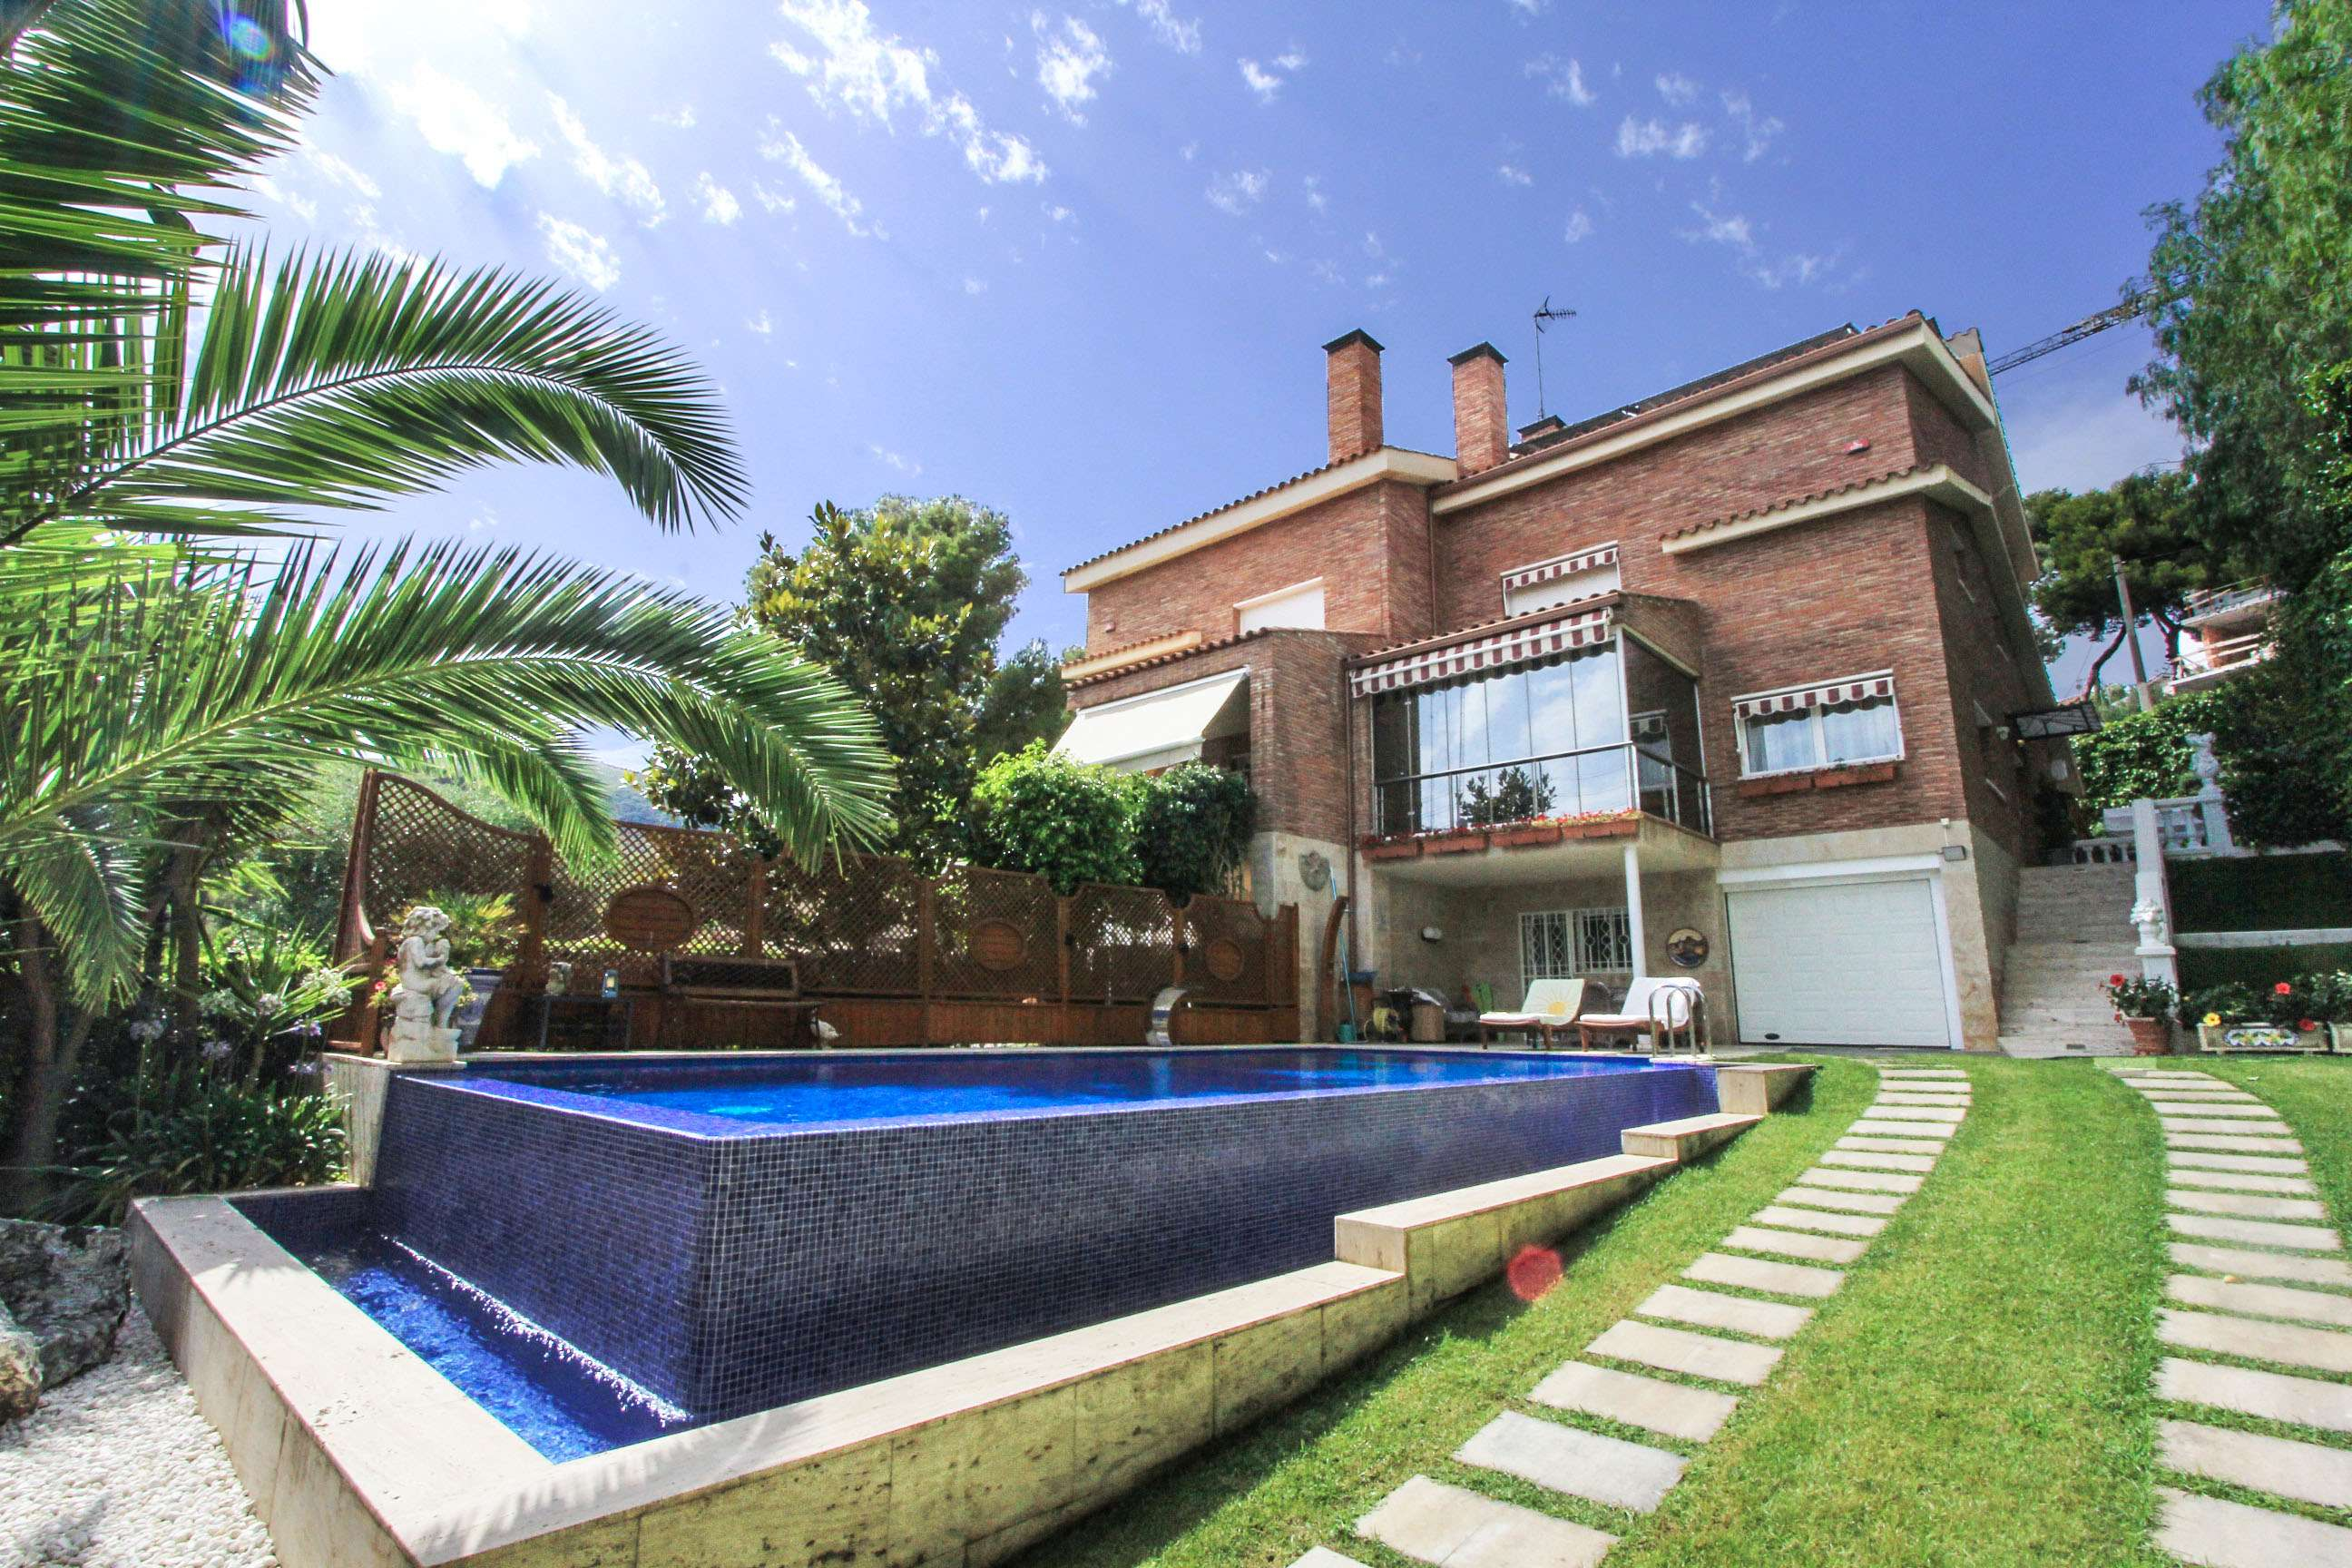 Detached house with pool in Castelldefels